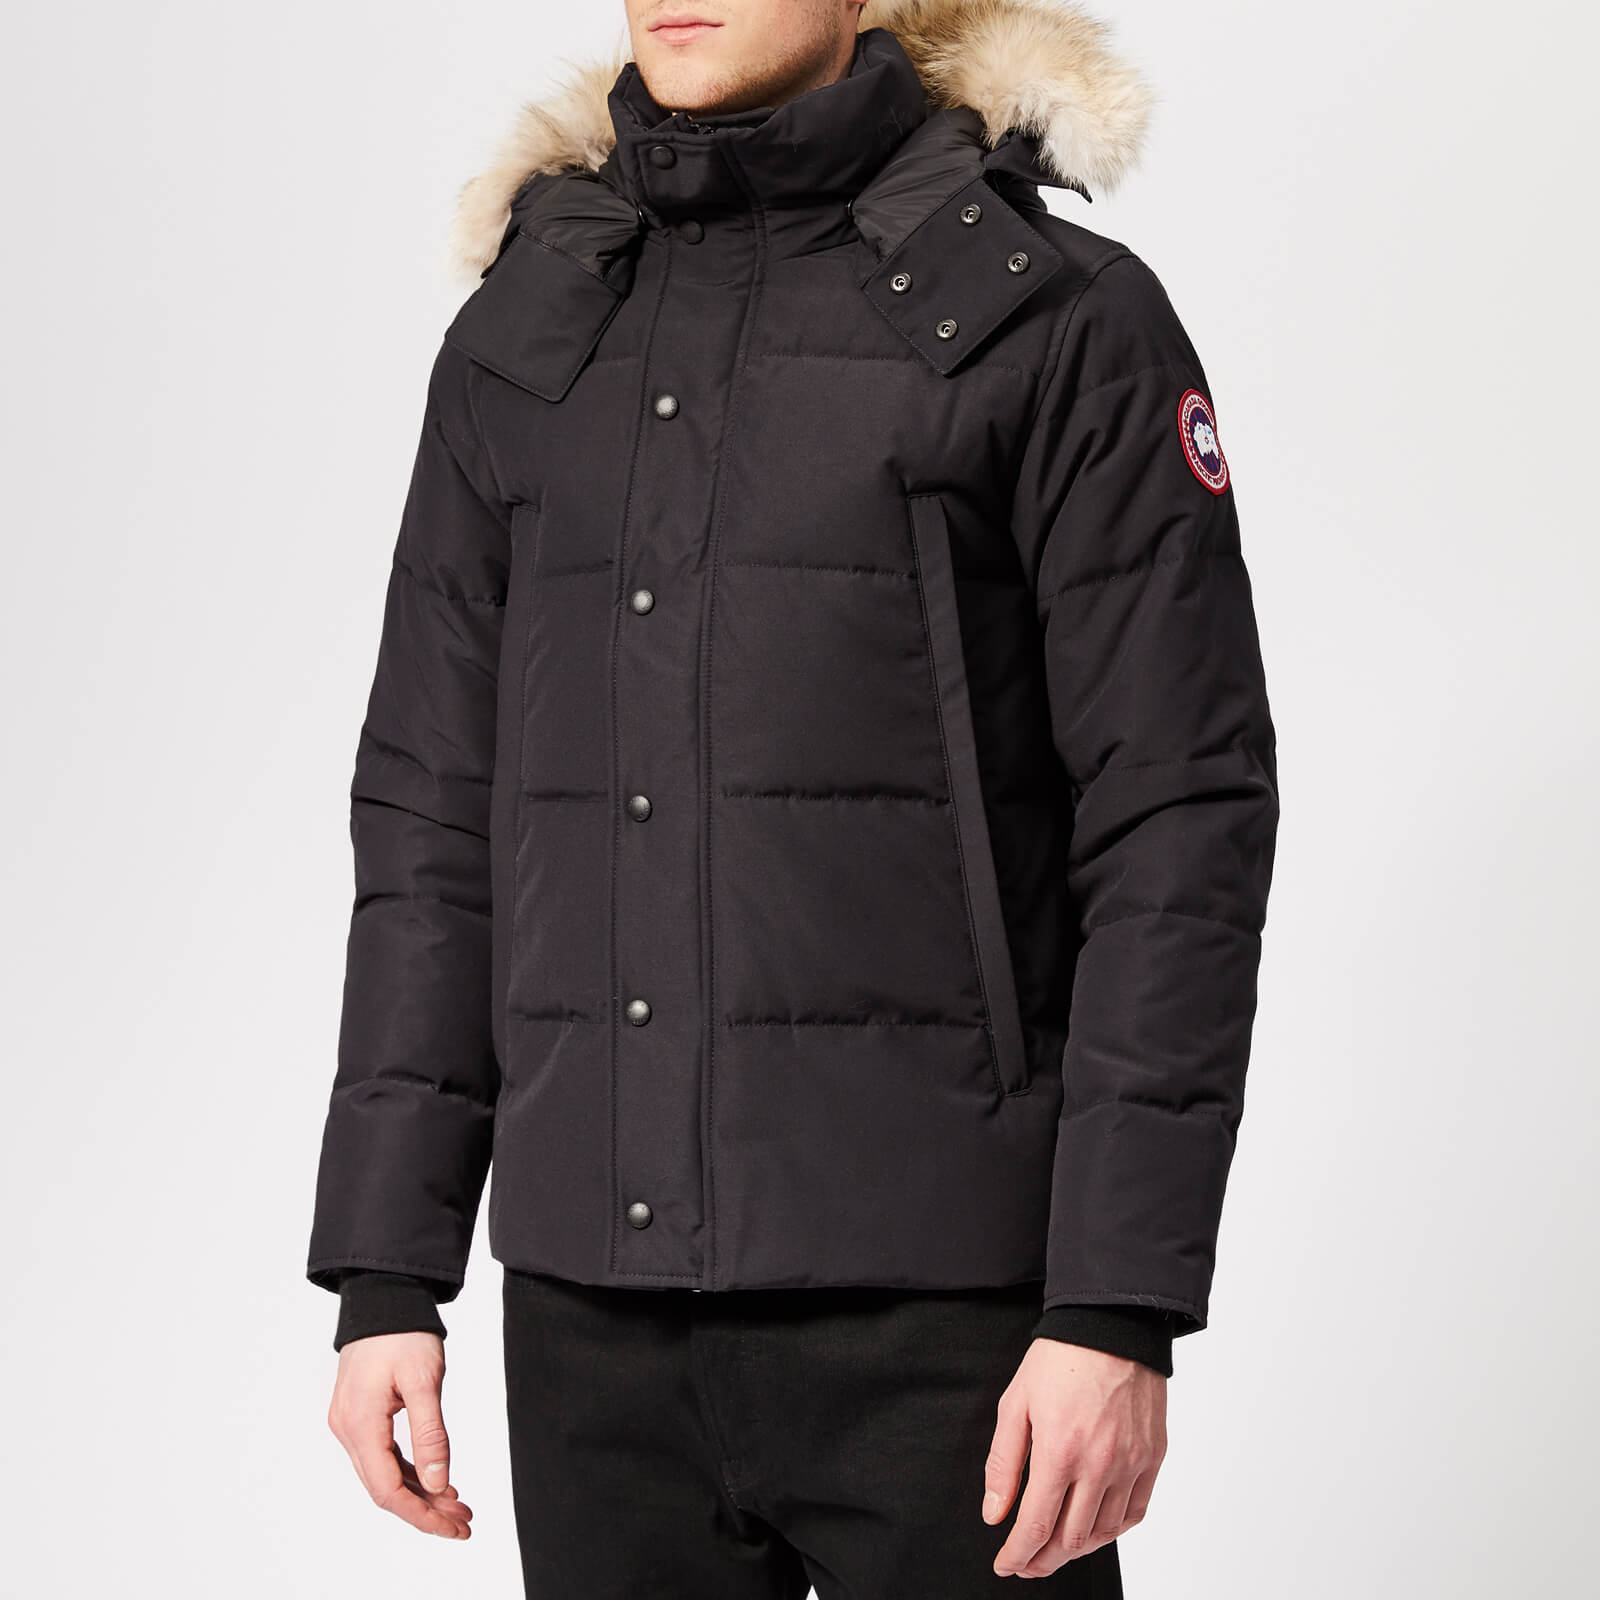 3265505ed57 Canada Goose Men's Wyndham Parka - Fusion Fit - Navy - Free UK Delivery  over £50